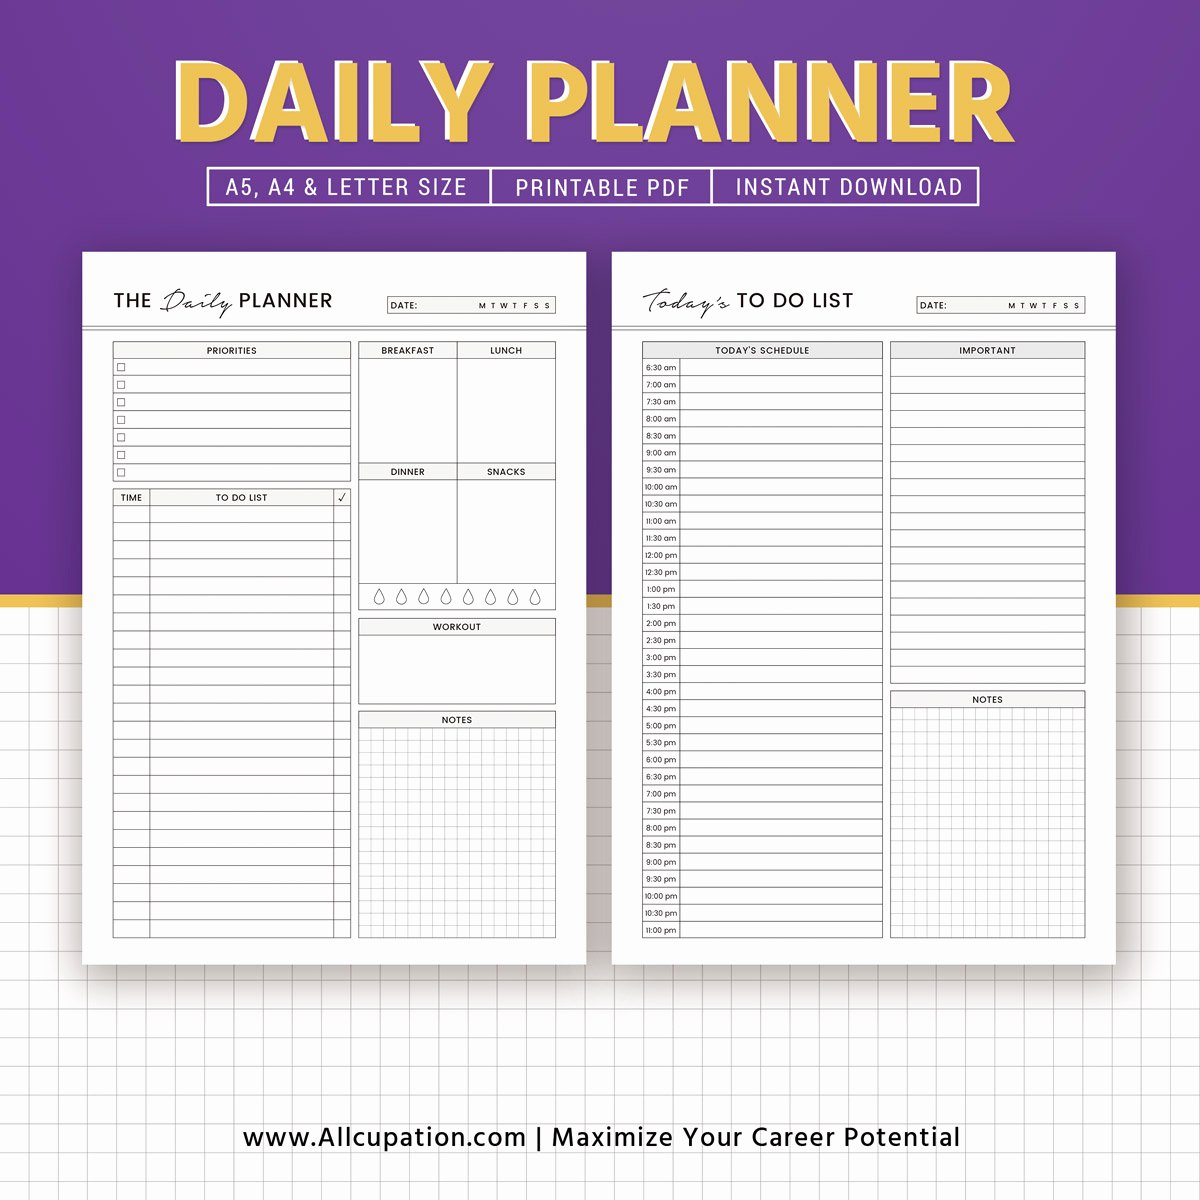 Printable Daily Planner 2019 Awesome 2019 Daily Planner Daily Schedule to Do List Printable